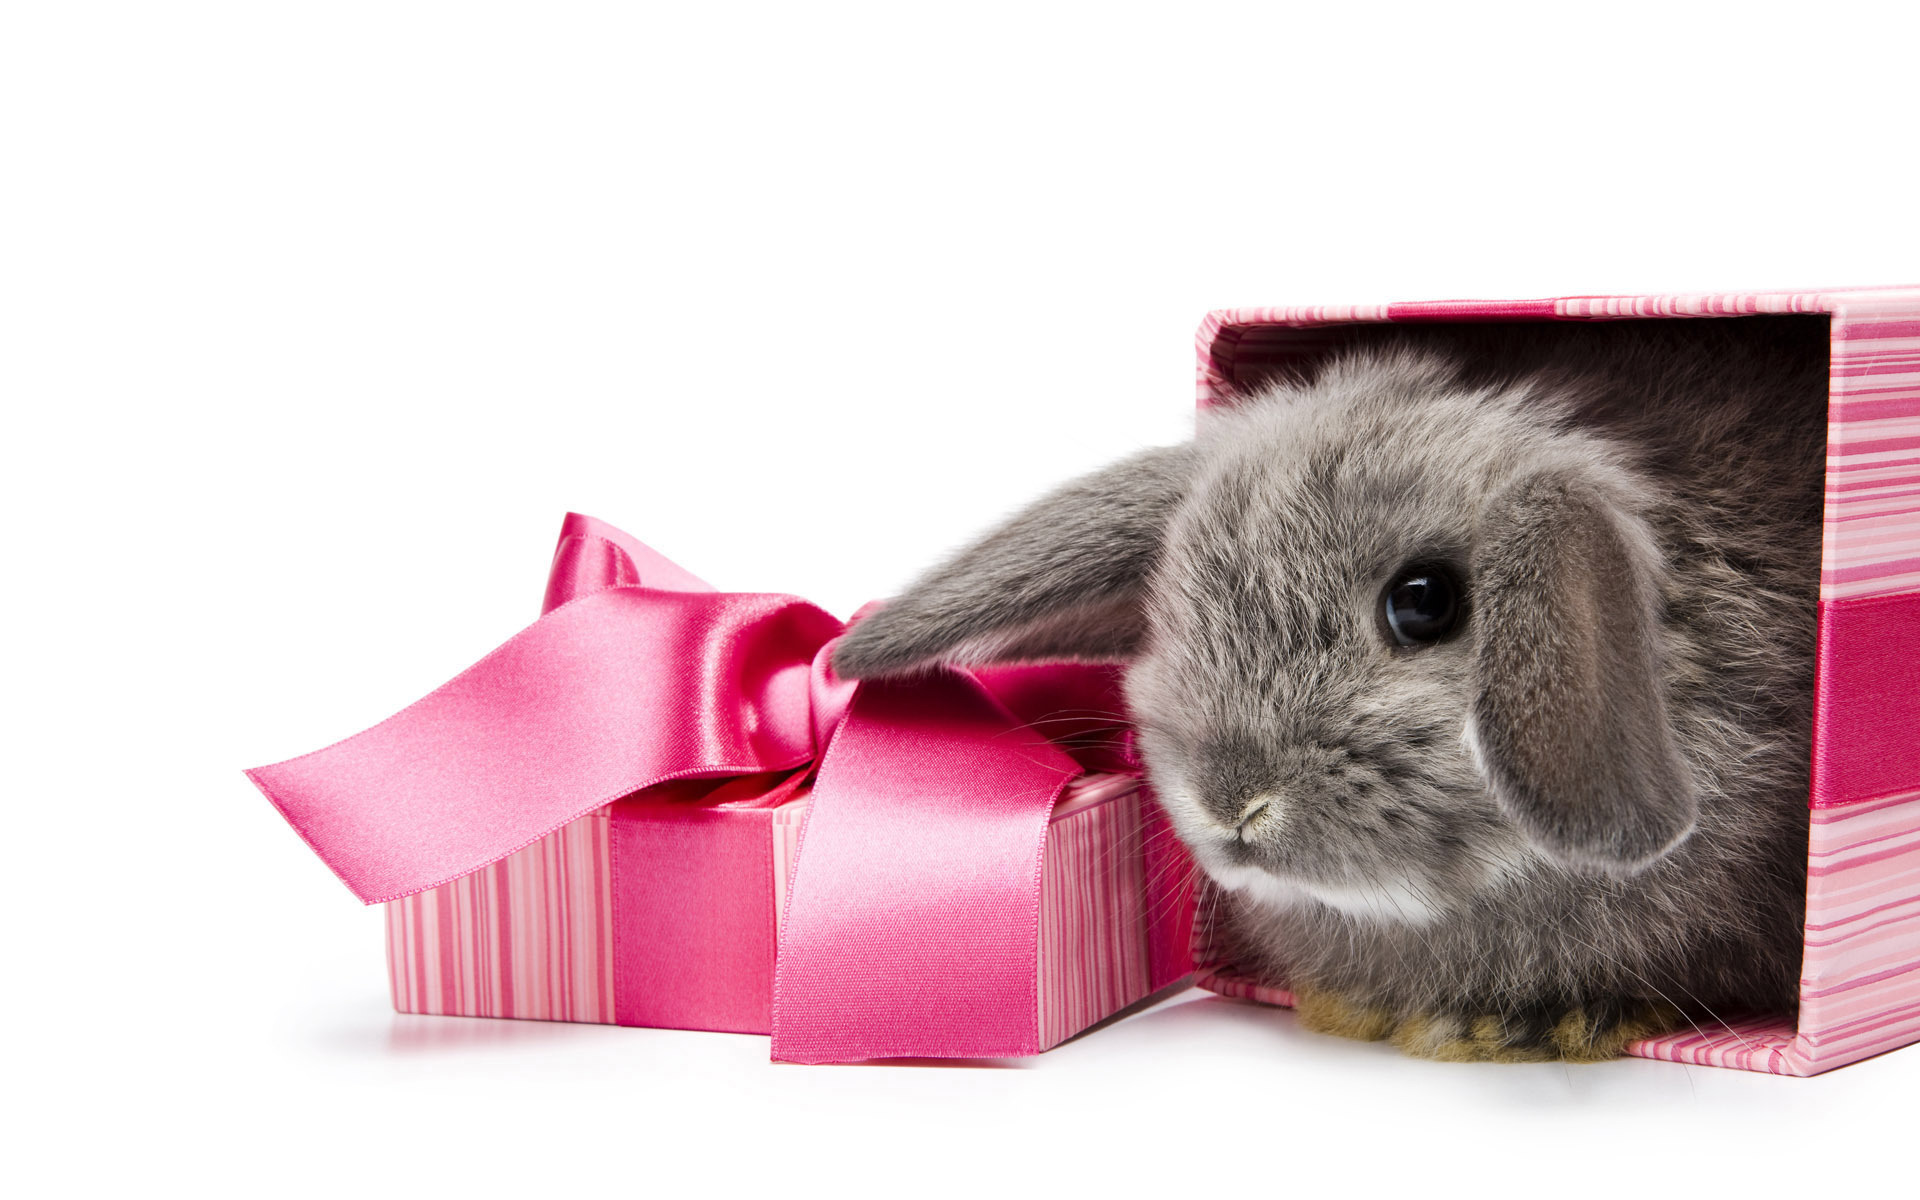 11489 download wallpaper Animals, Rodents, Rabbits screensavers and pictures for free